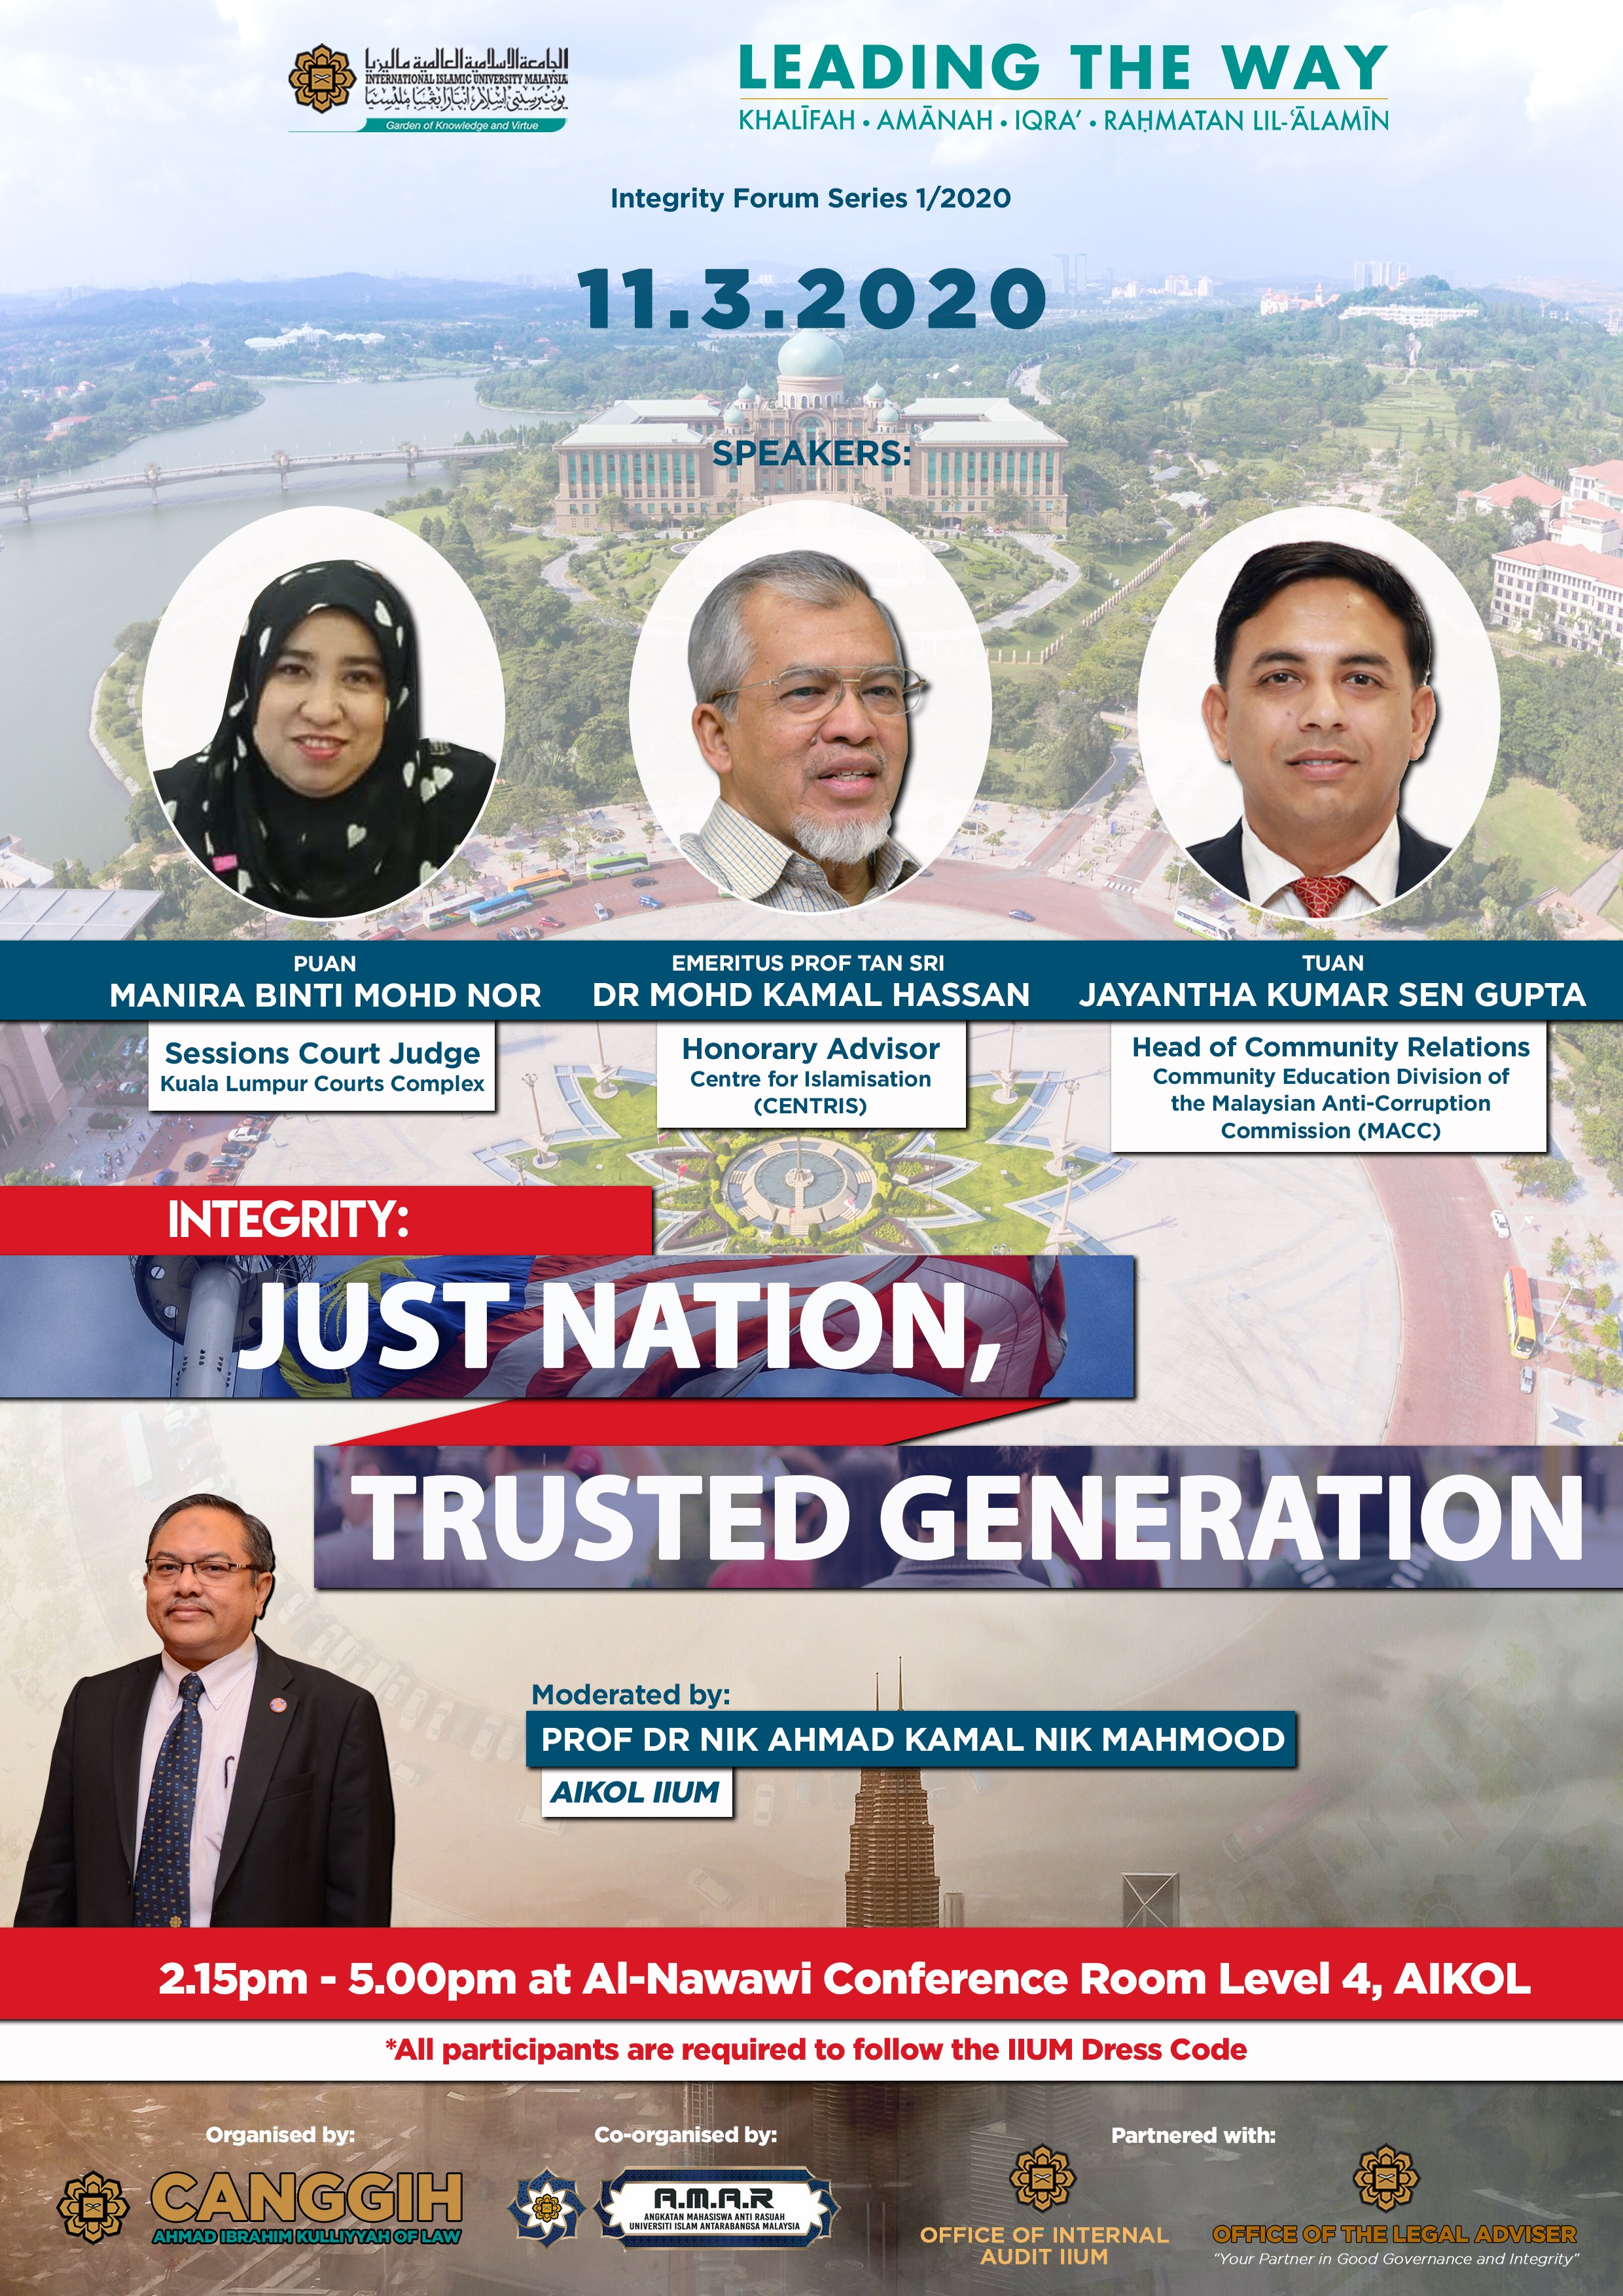 INTEGRITY FORUM 1/2020: JUST NATION, TRUSTED GENERATION